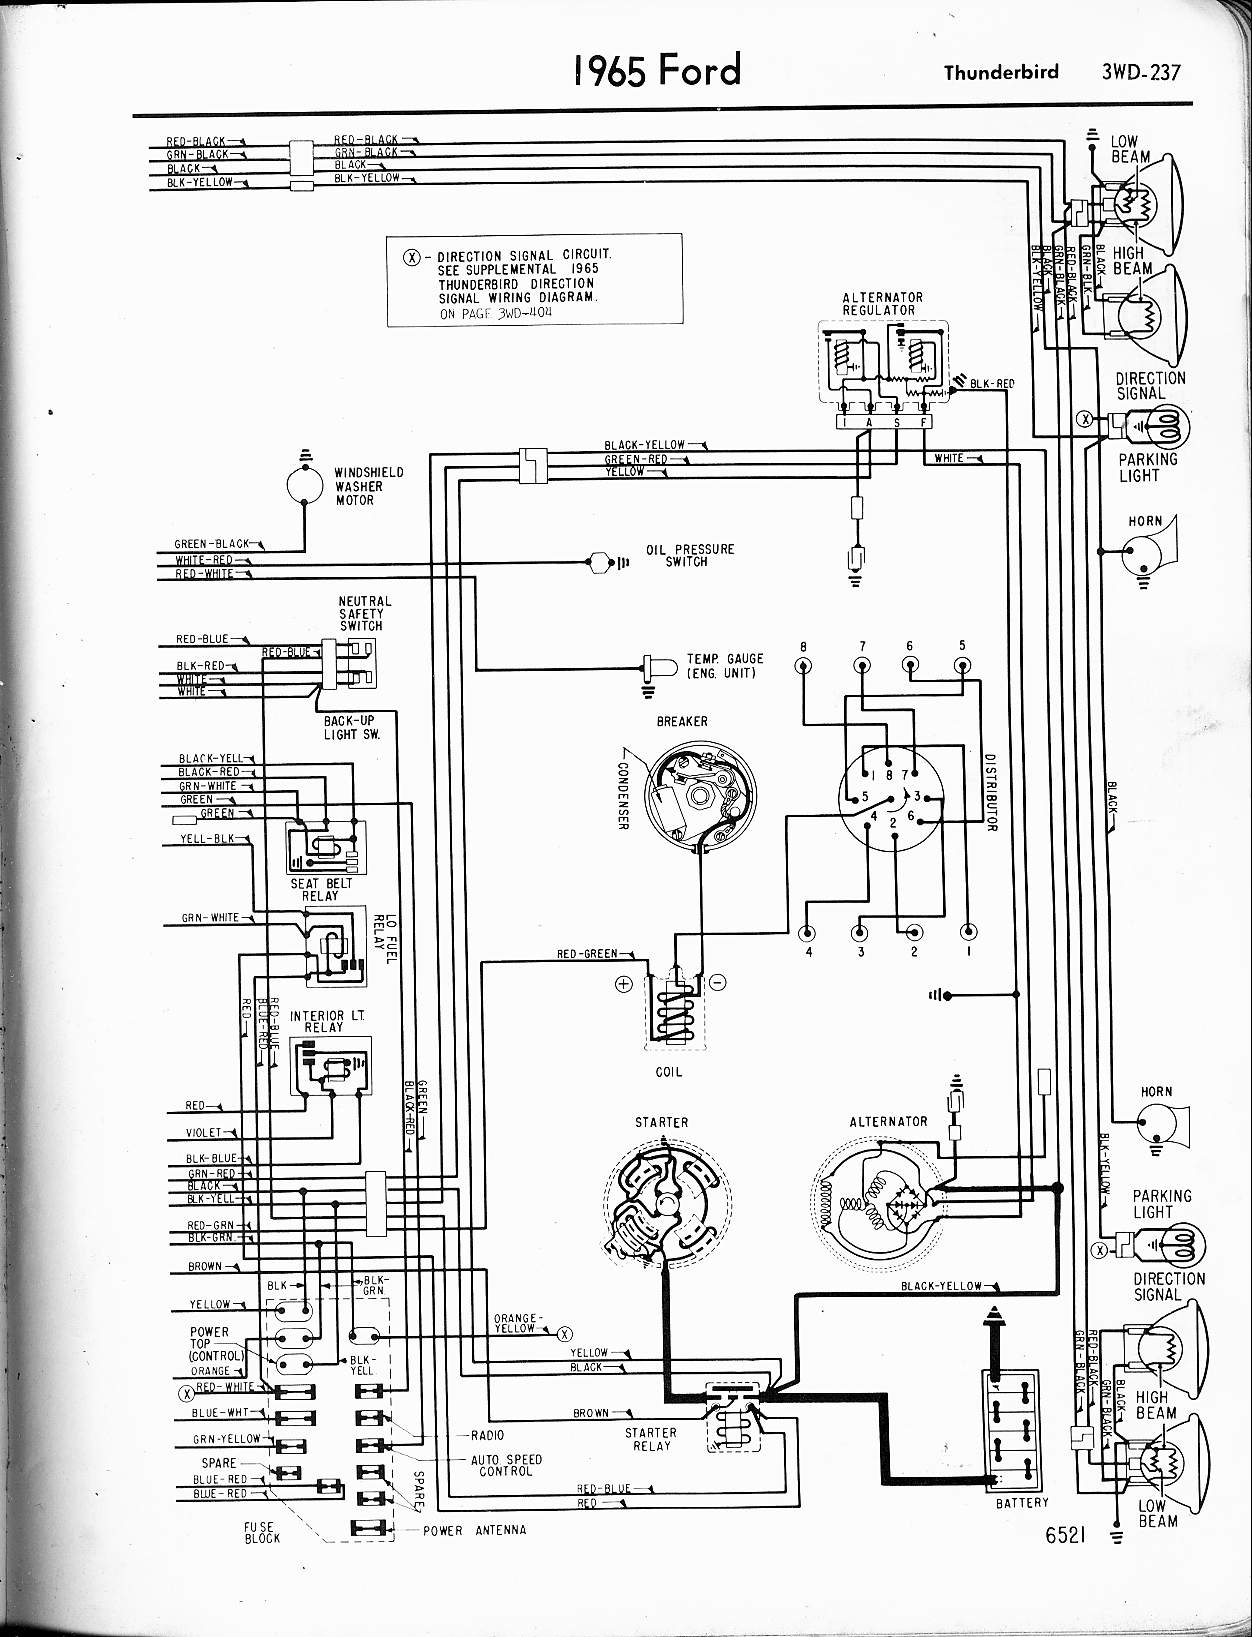 escort power cord wiring diagram Collection-Ford Escort Wiring Diagrams Free Awesome 65 ford F100 Wiring Diagram Wiring Diagrams Schematics 9-j